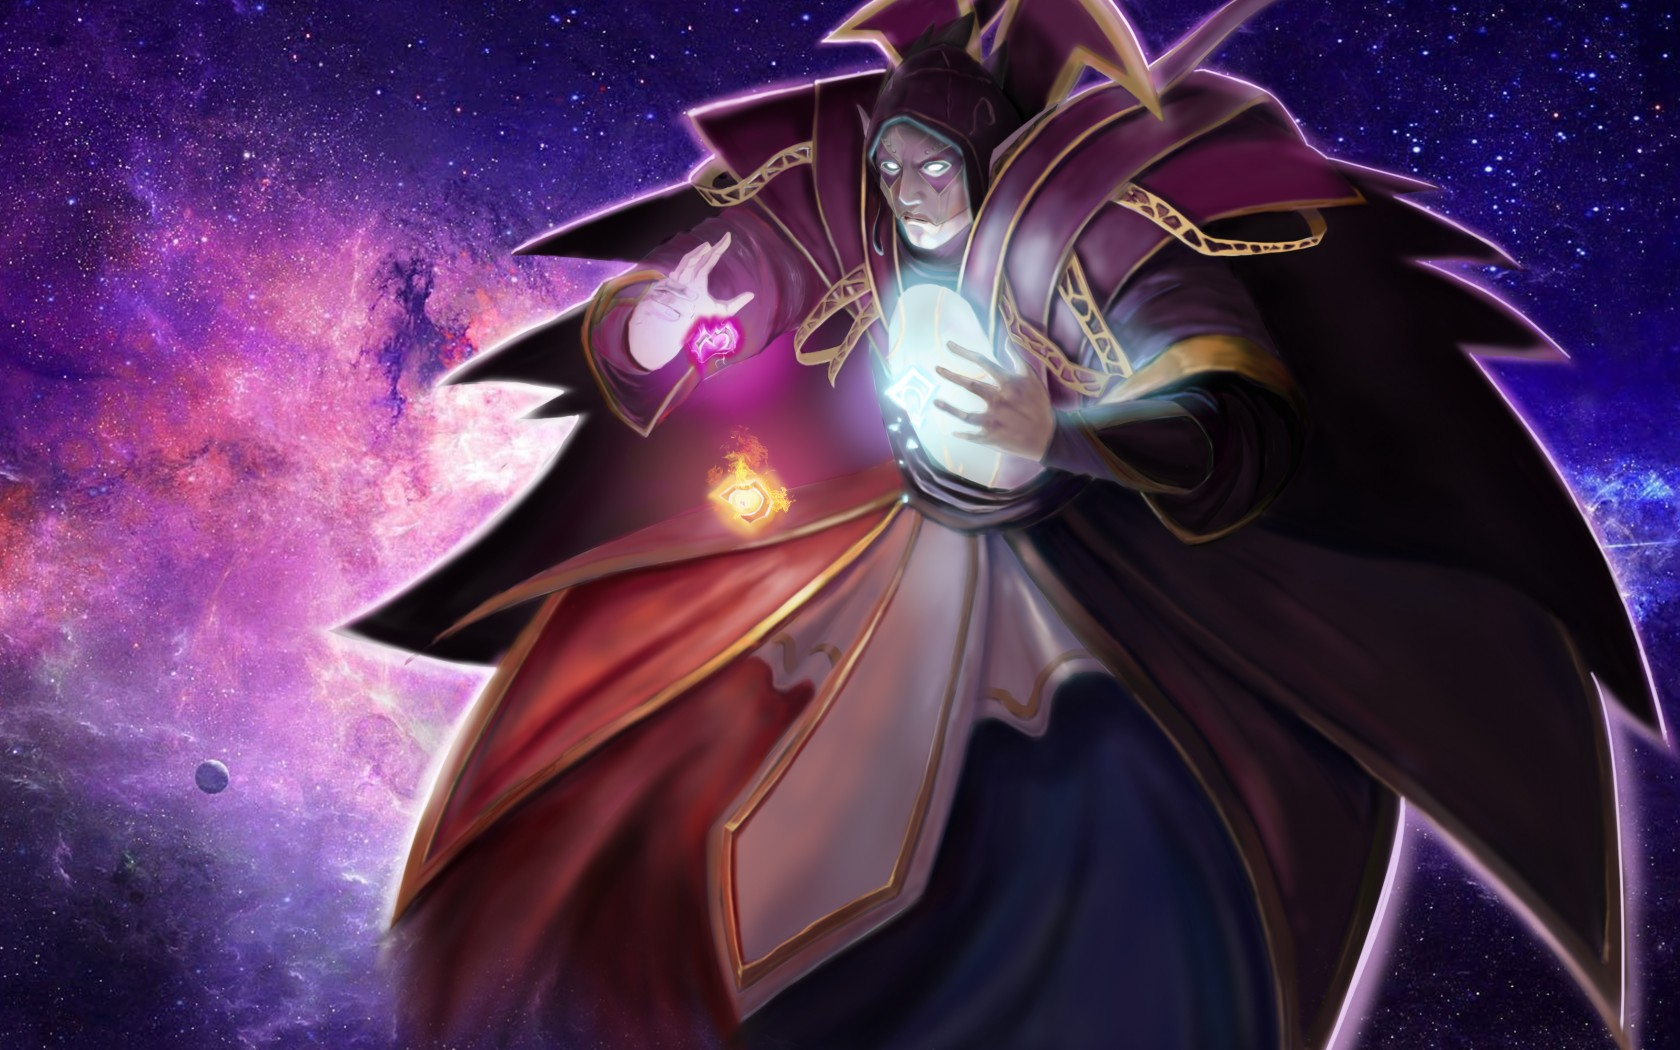 Invoker backgrounds for laptop